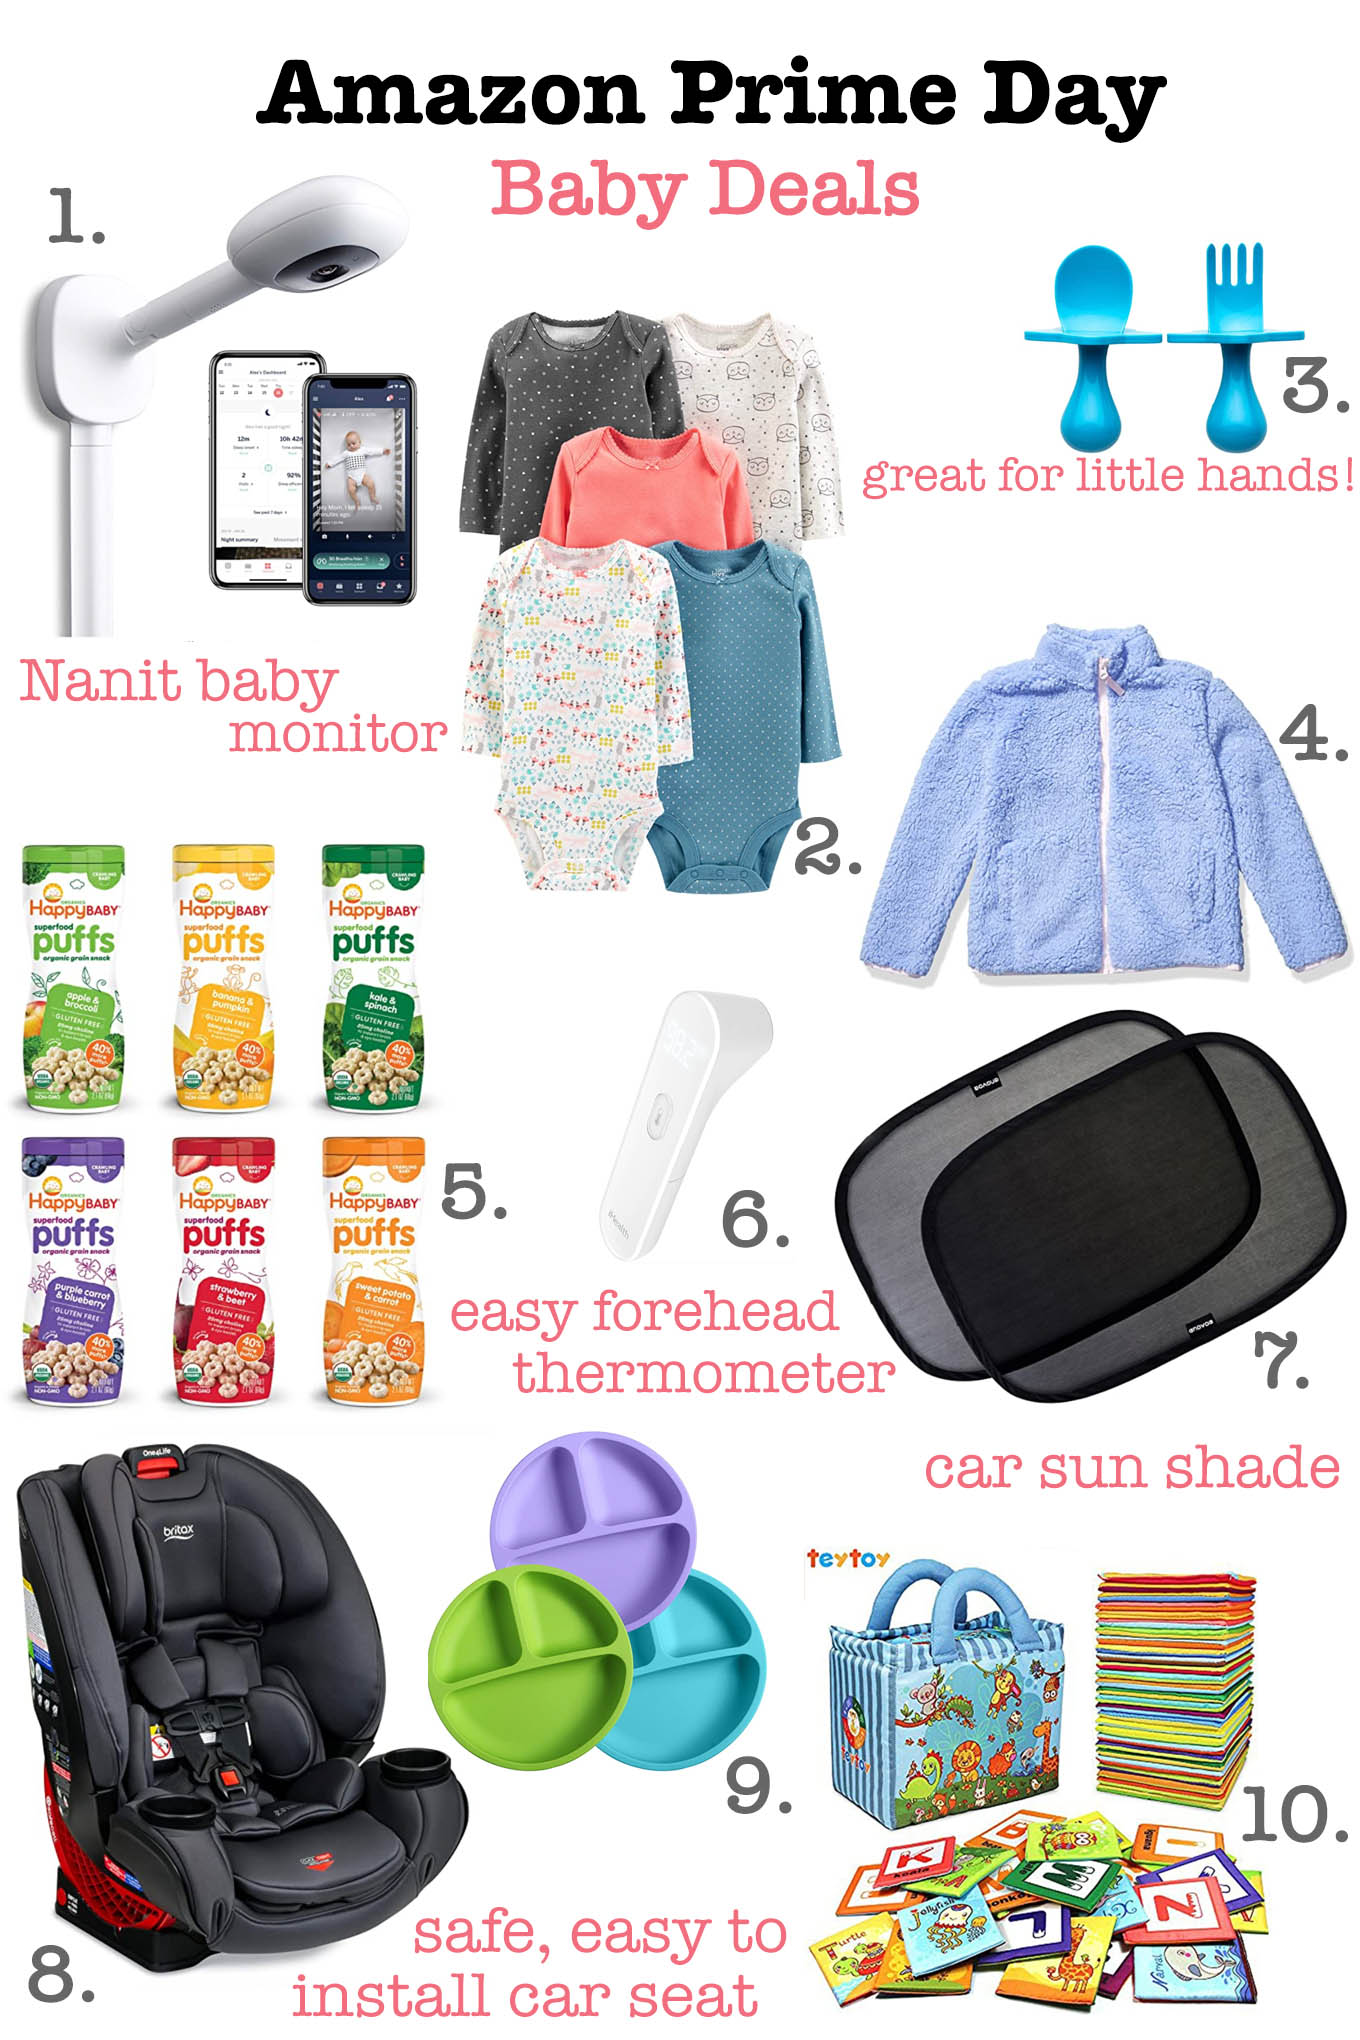 Prime Day by popular Chicago life and style blog, Glass of Glam: collage image of a Nanit baby monitor, carseat, car sun shade, forehead thermometer, onesies, Happy Baby Super Food puffs, Soft Alphabet flash cards, and baby utensil set.